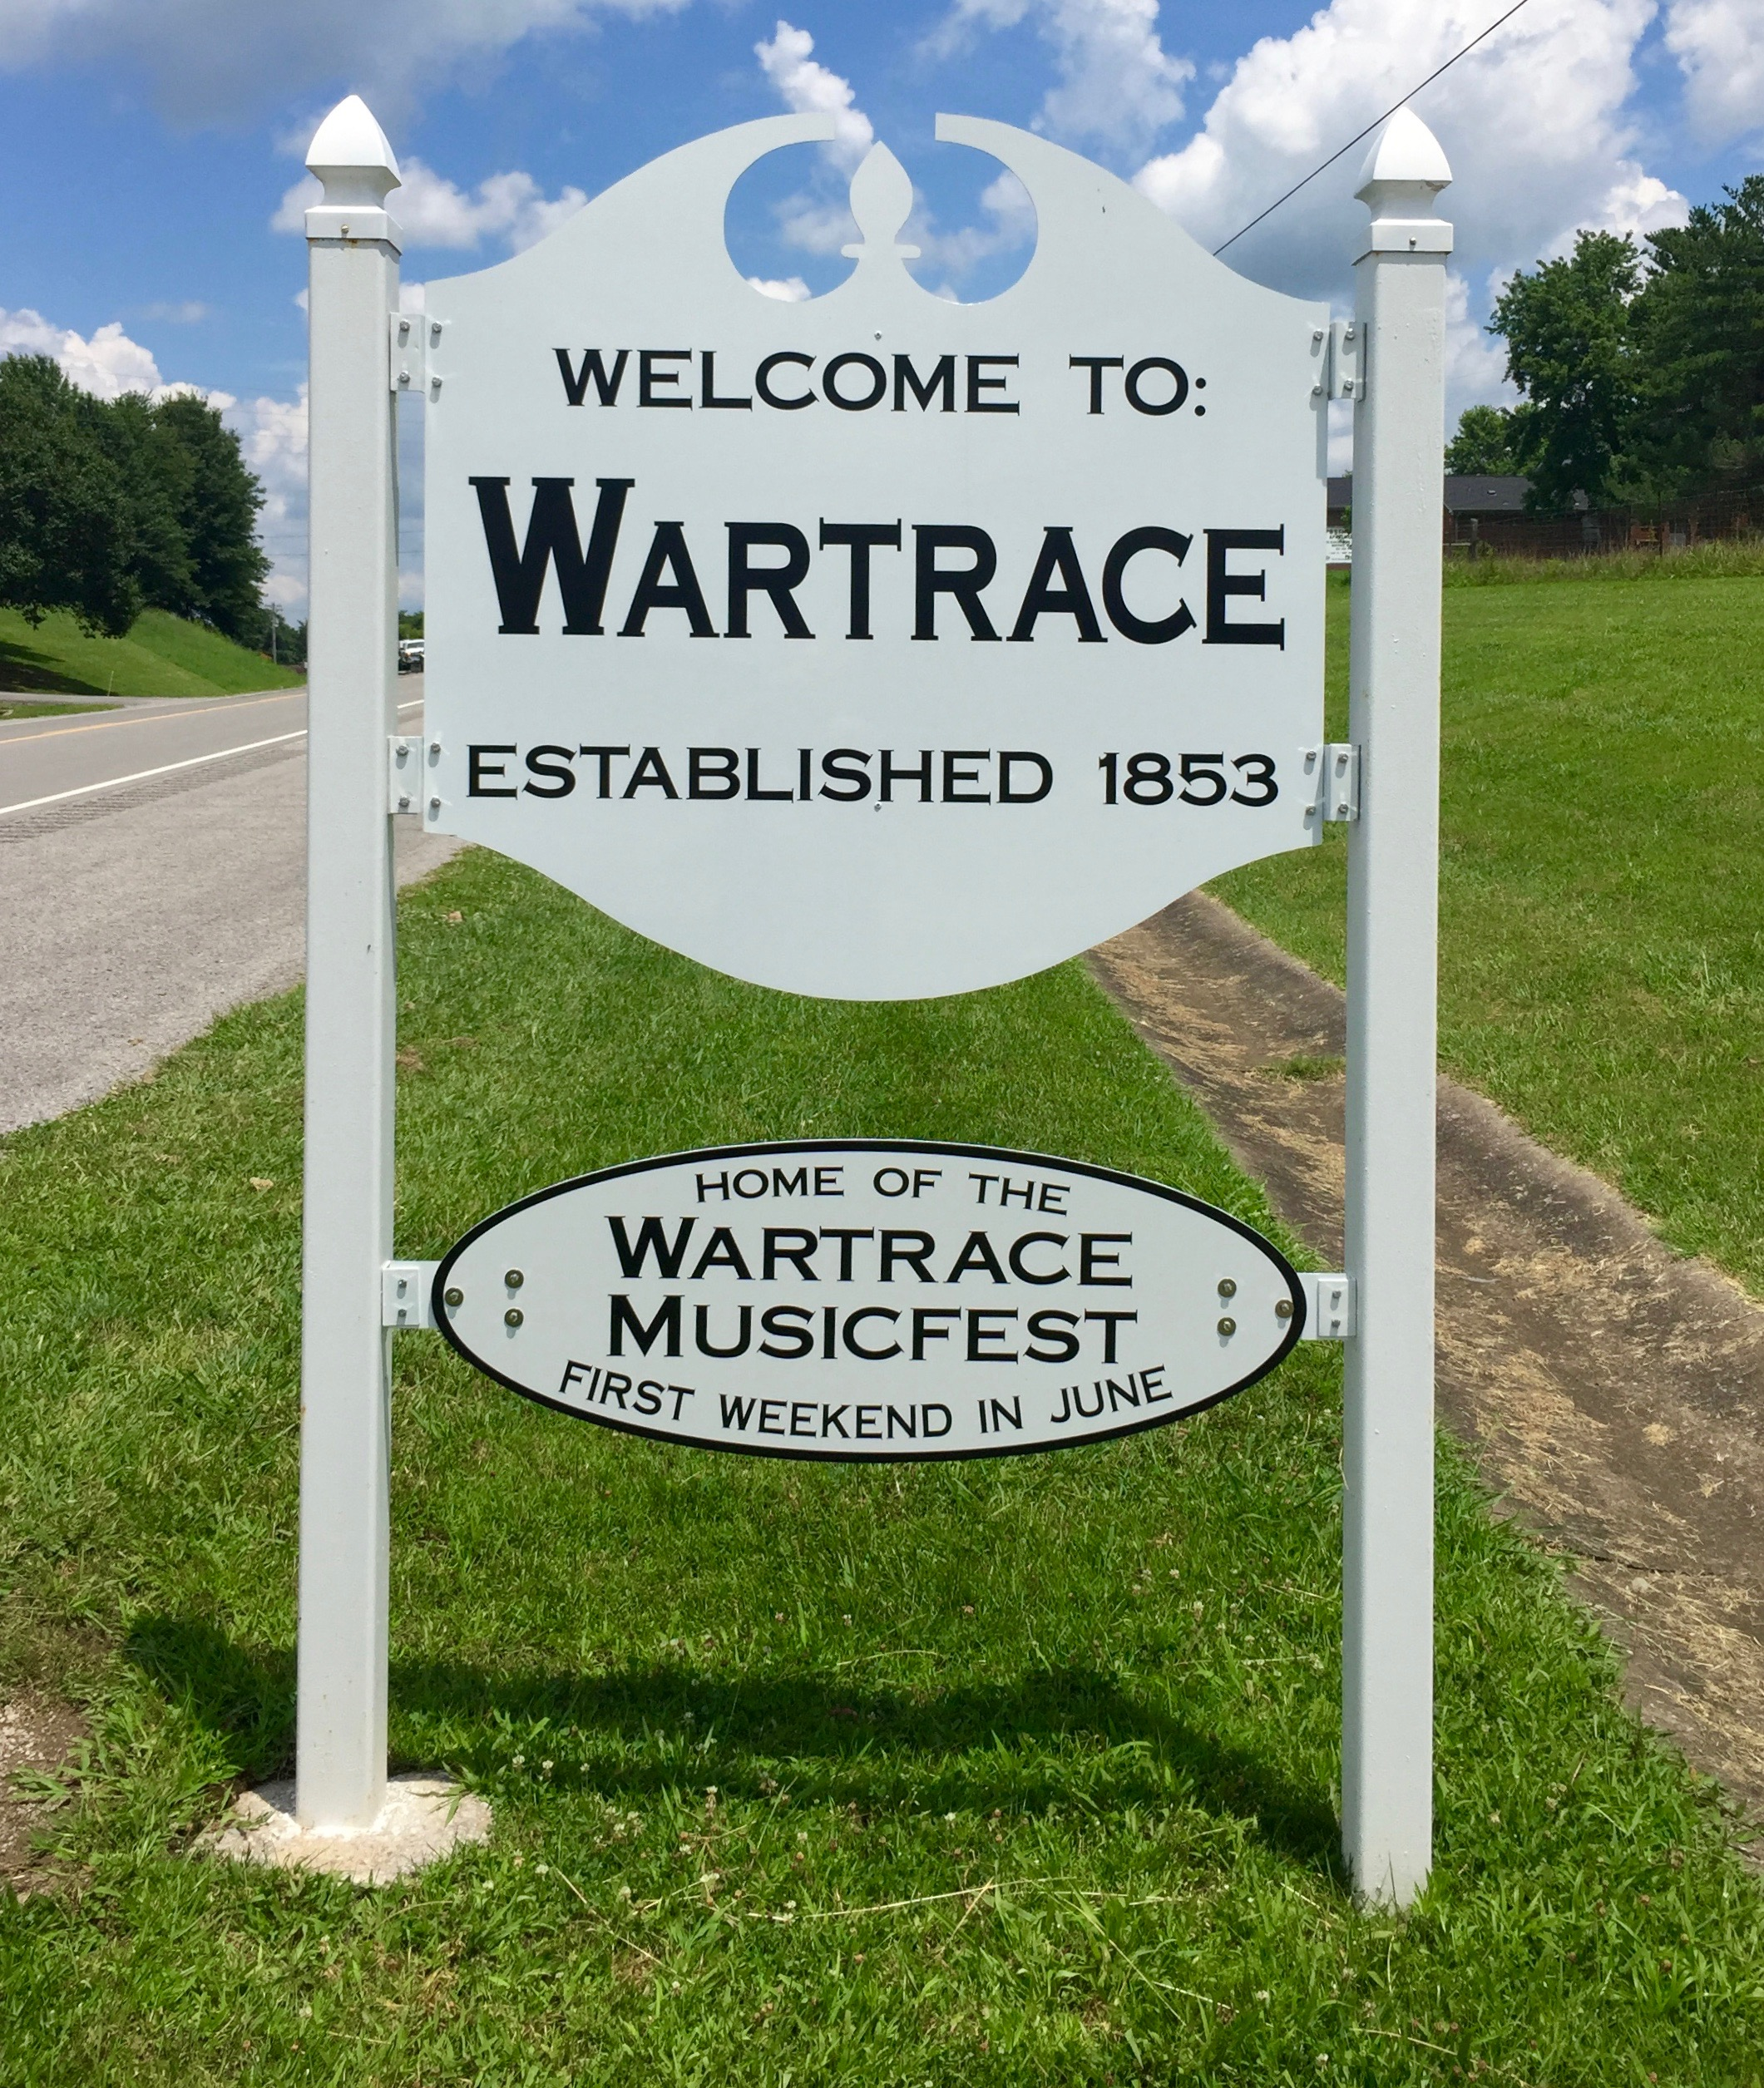 WARTRACETOWNSIGN